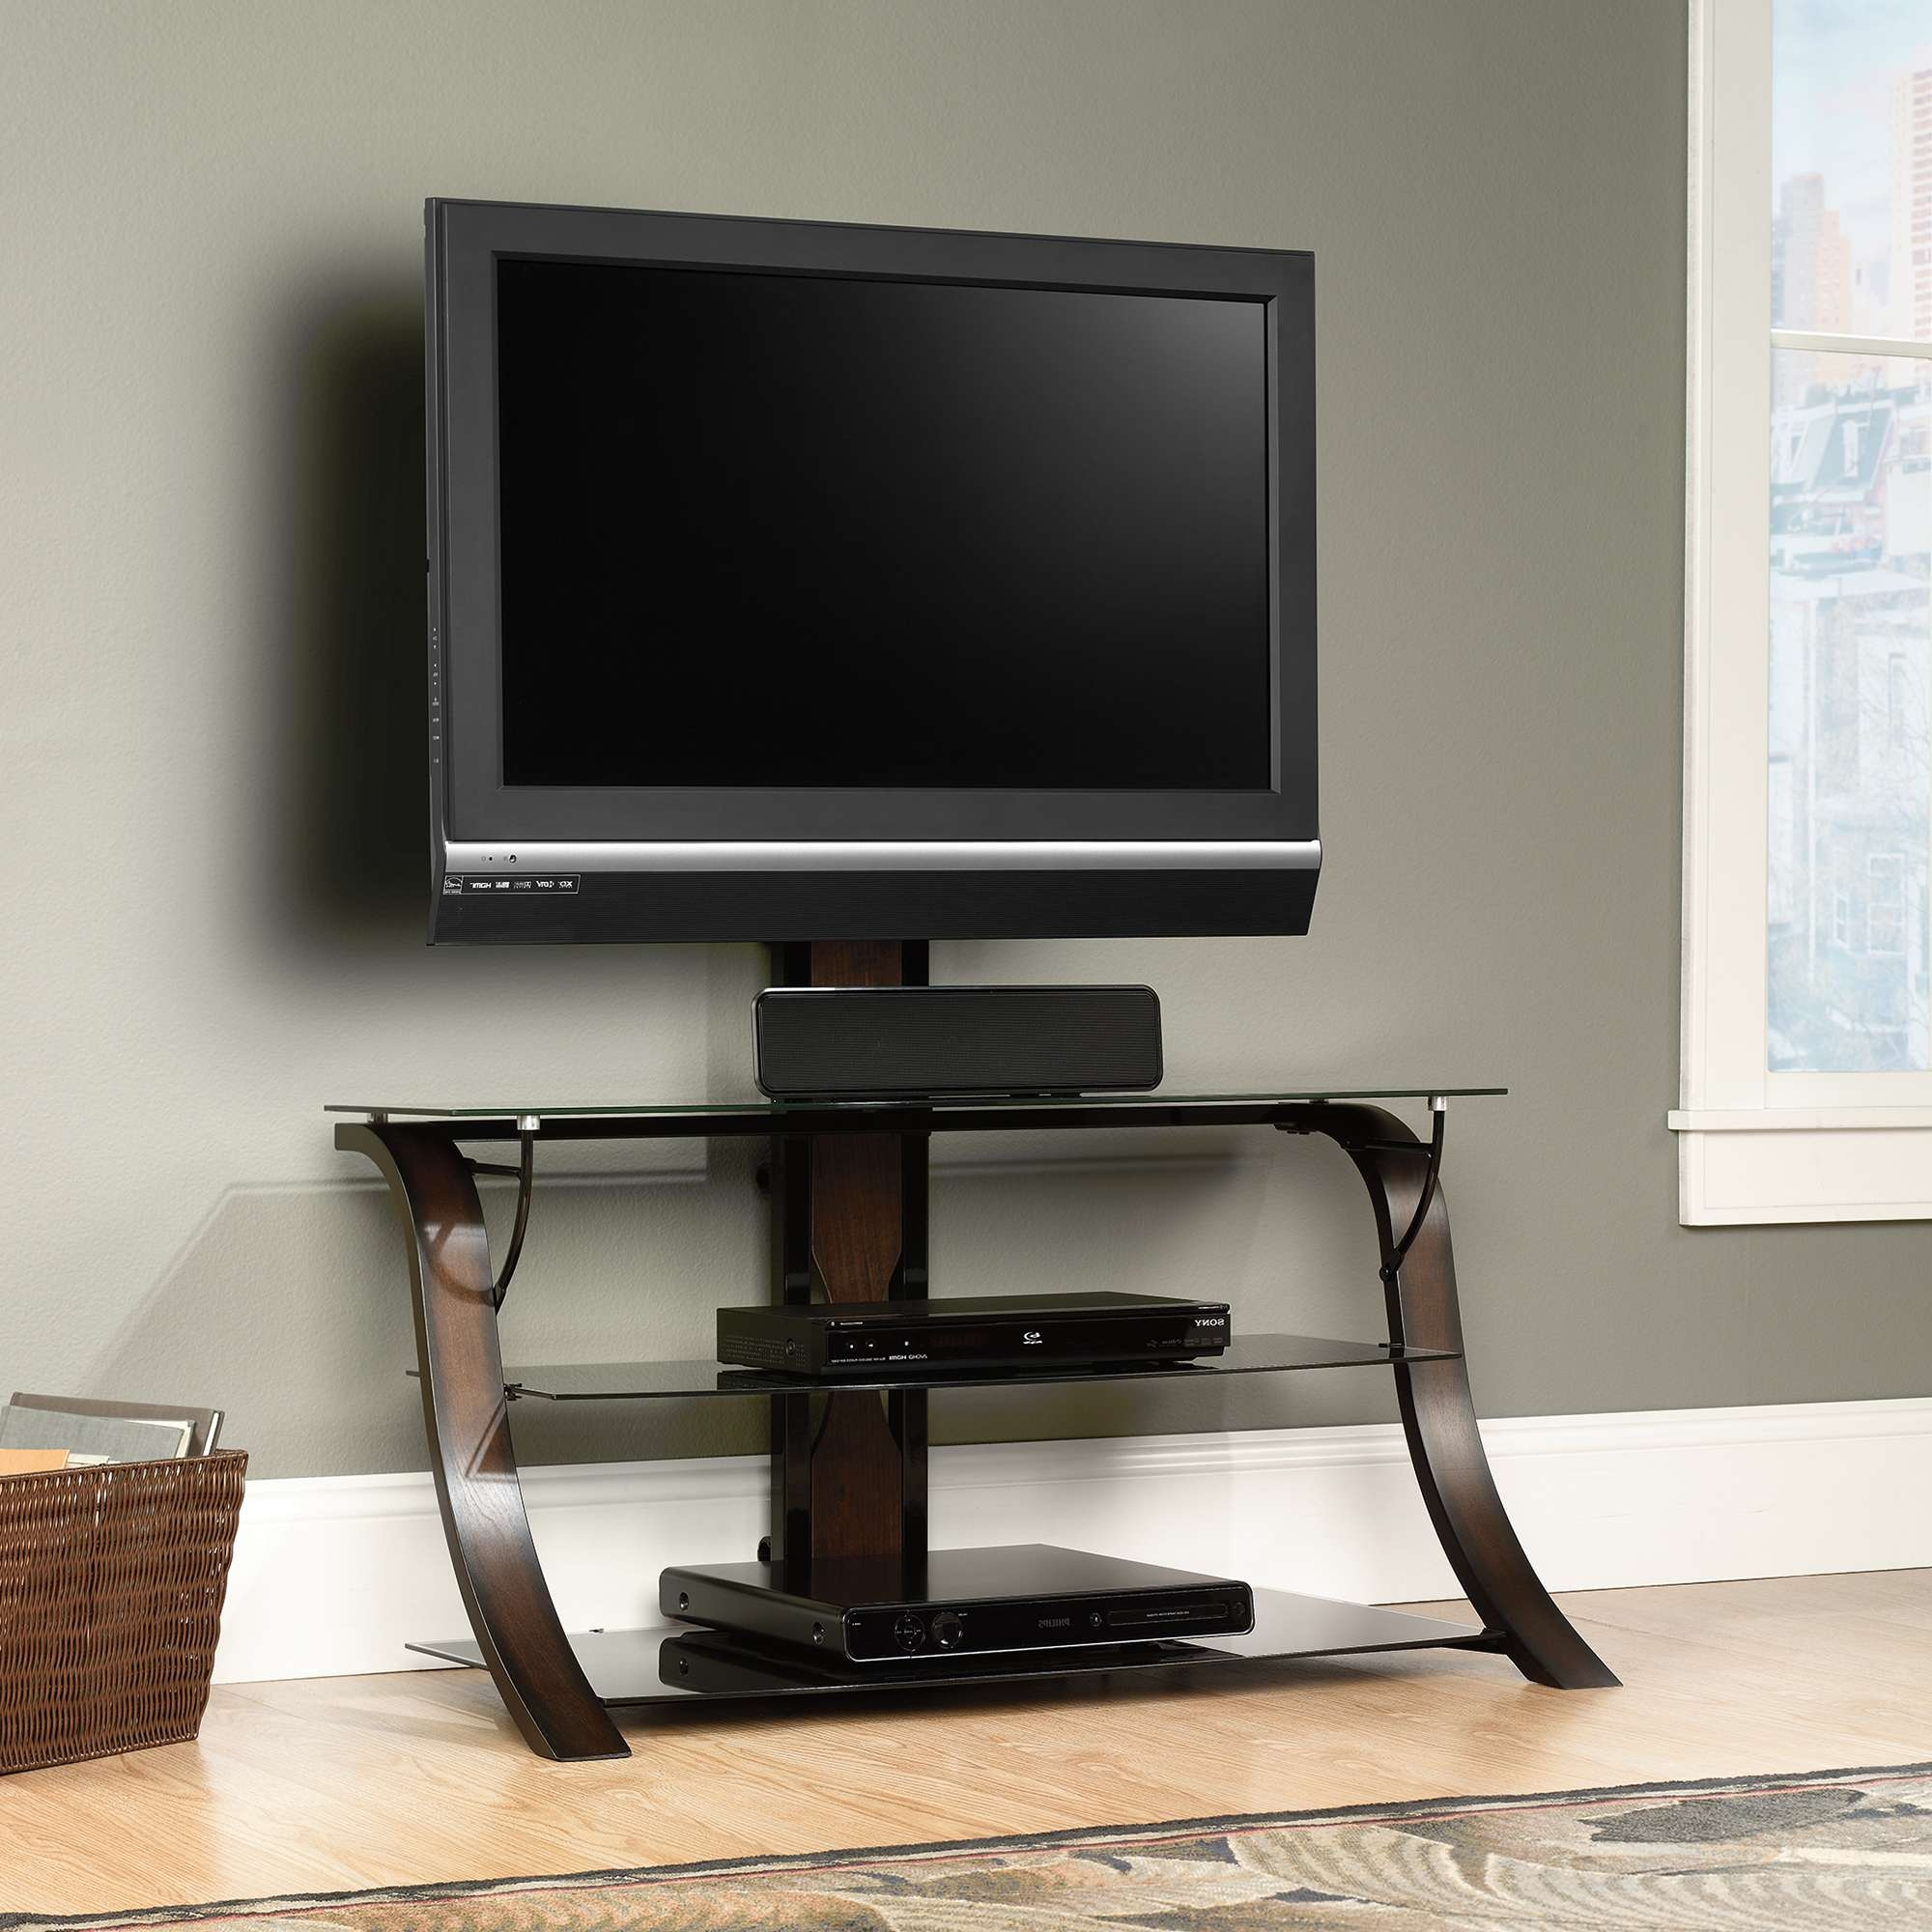 Sauder Select | Veer Tv Stand With Mount | 413906 | Sauder With Regard To Wooden Tv Stands For 50 Inch Tv (View 13 of 15)